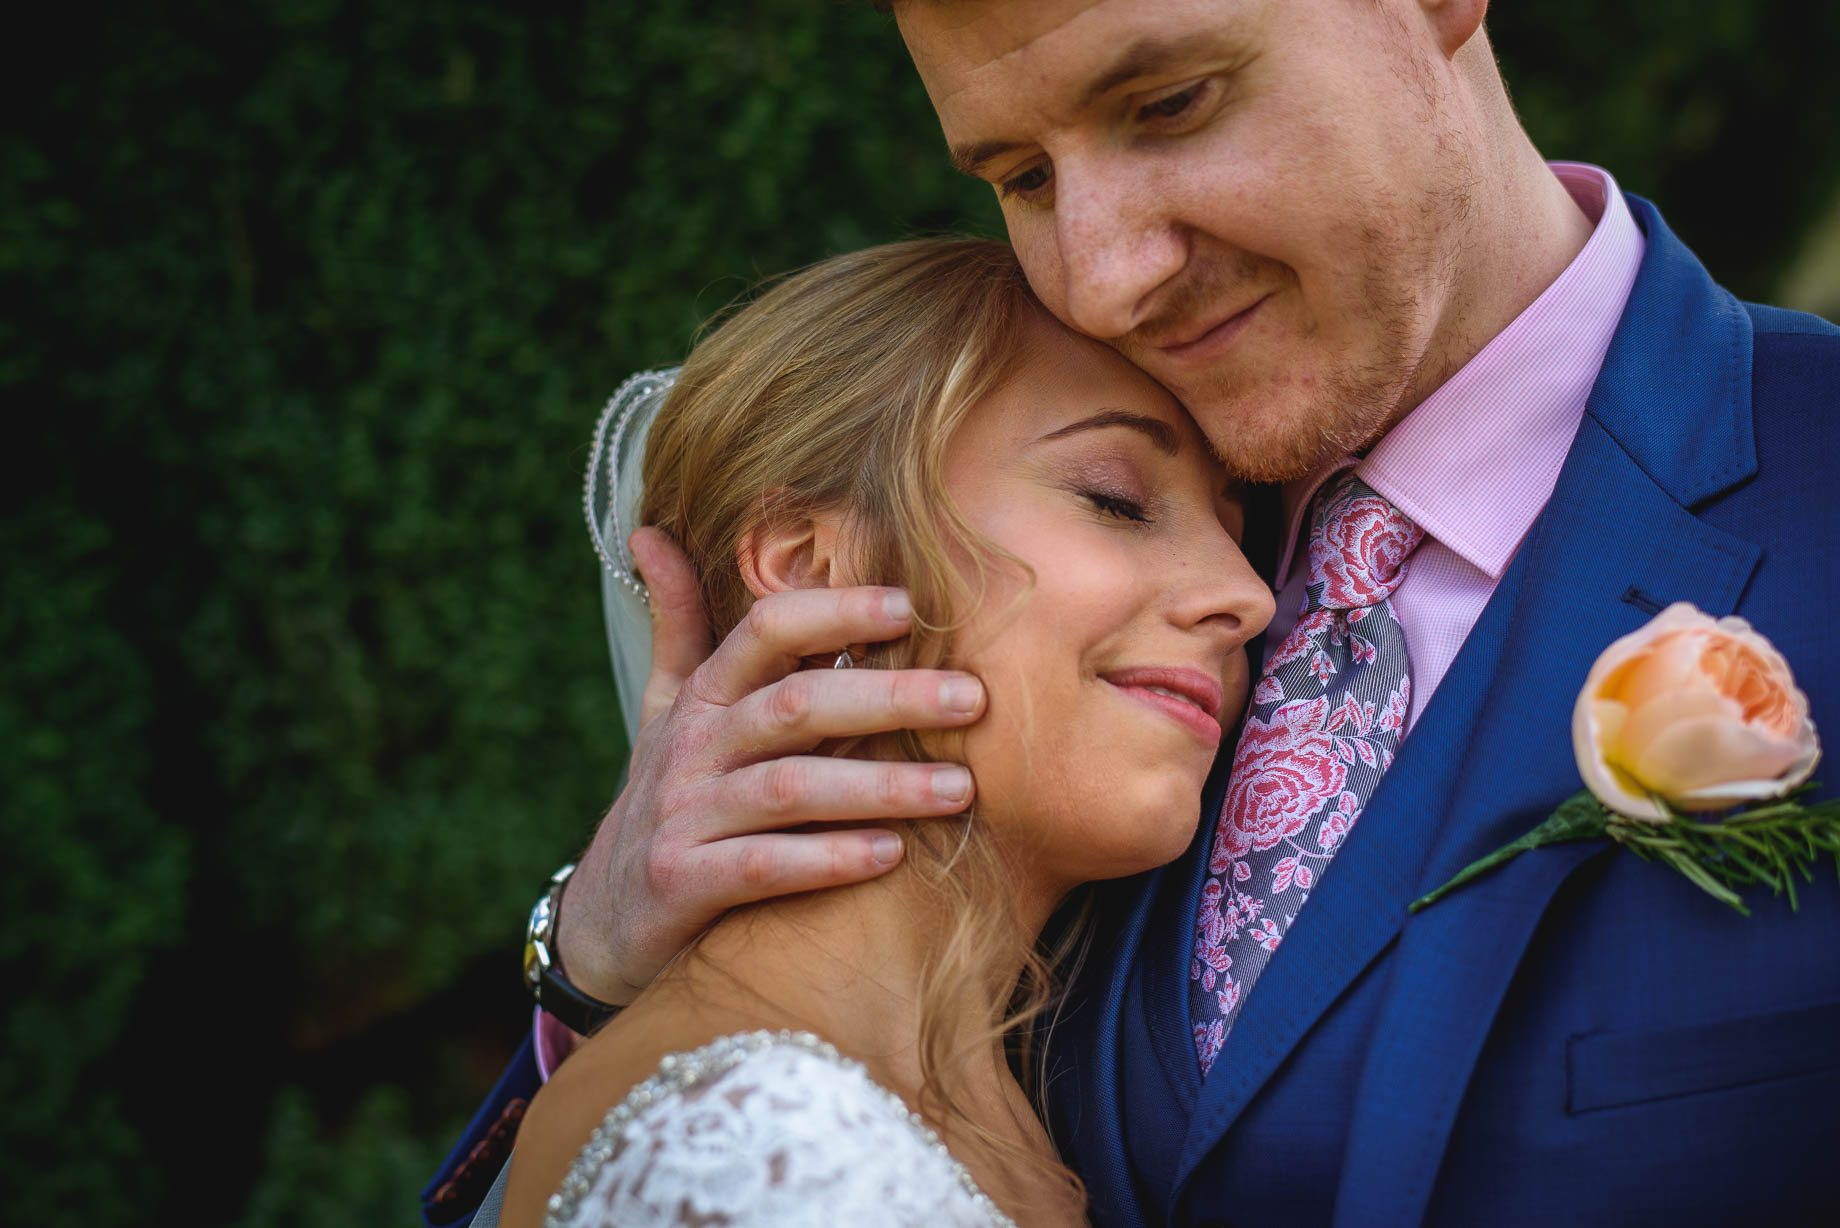 Hampshire wedding photography by Guy Collier - Emily and Tom (88 of 164)